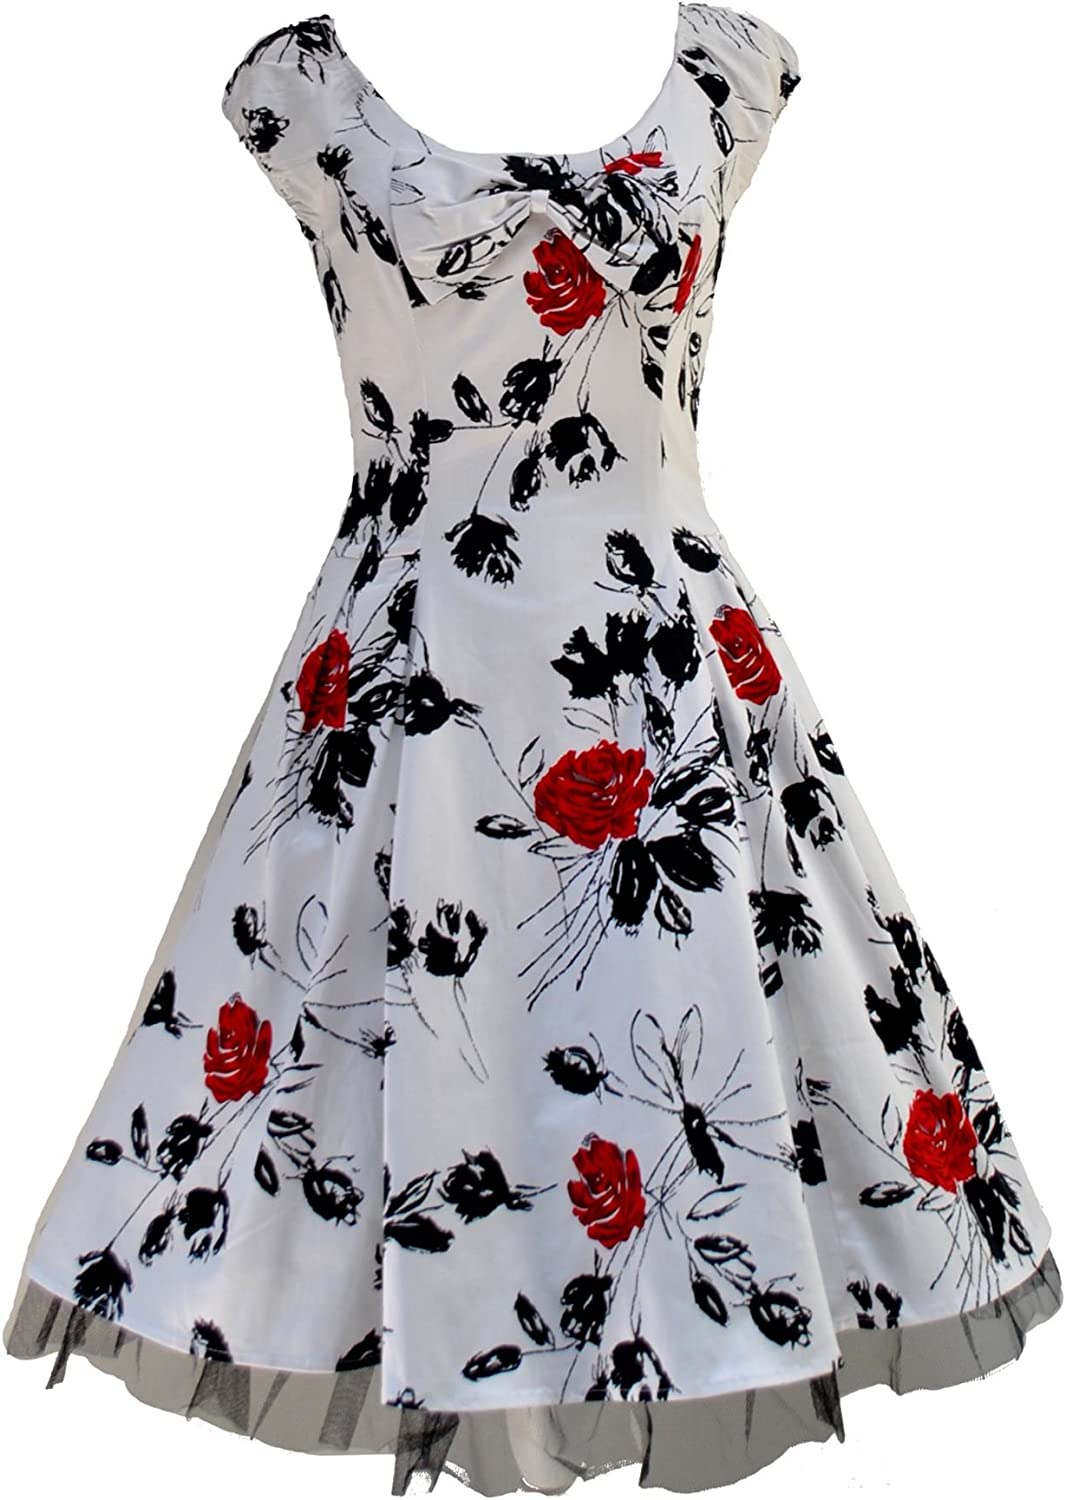 Womens 40s 50s Vintage Style Black Floral Bow Detail Jive Swing Dress New 8-18